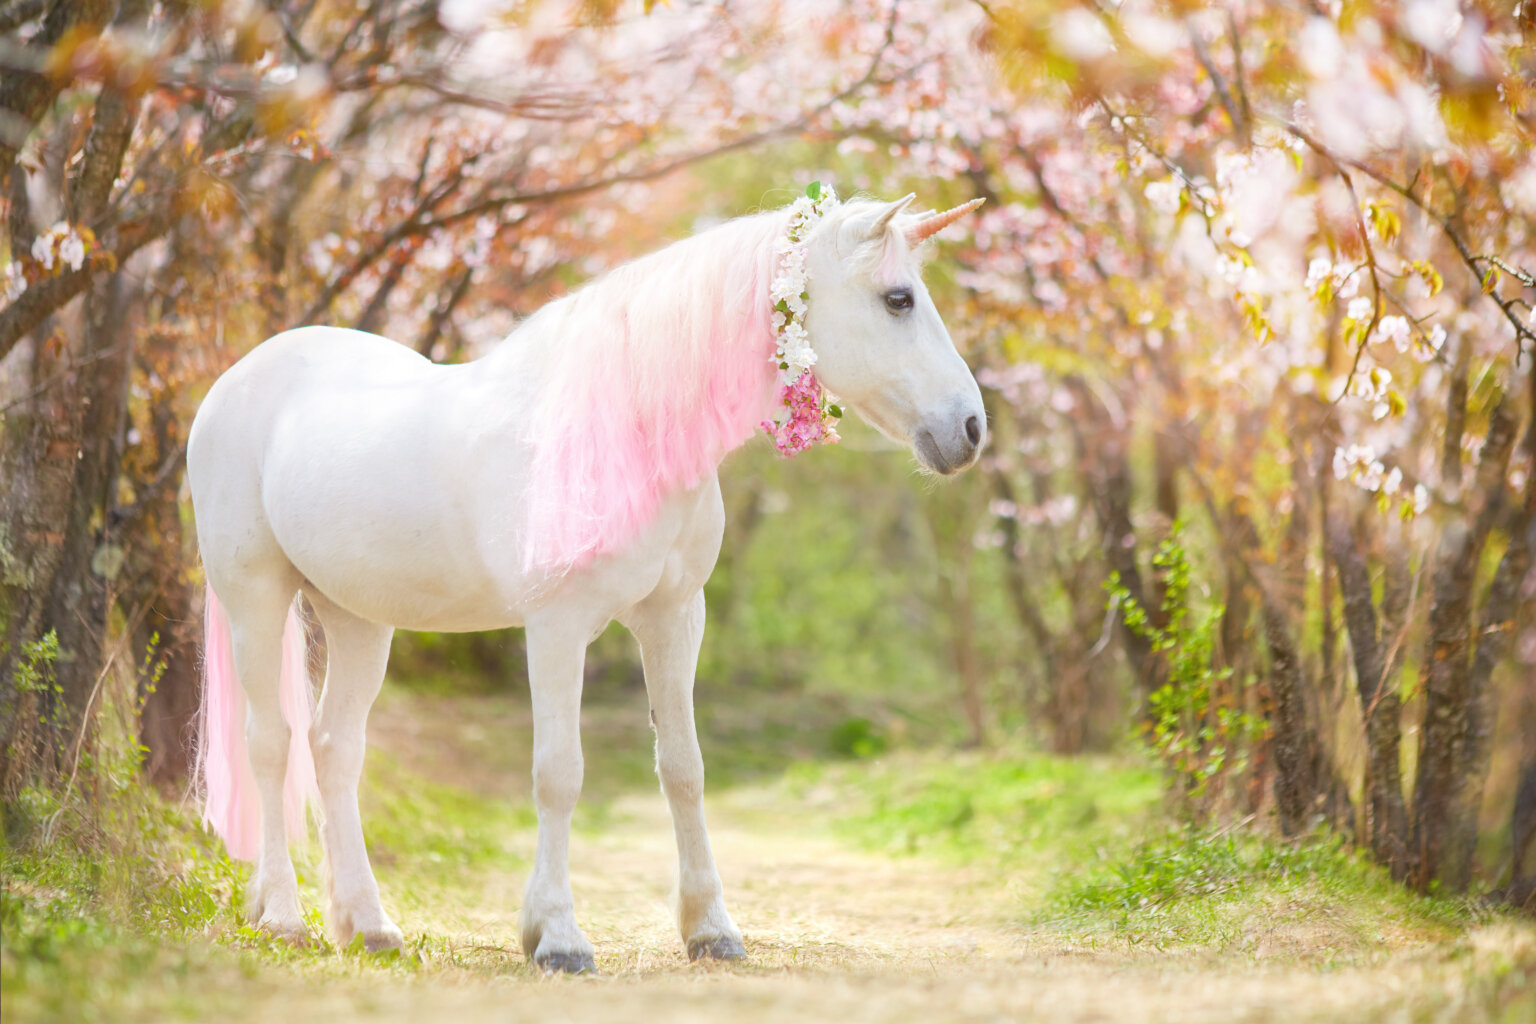 unicorn with pink mane walking through a forest